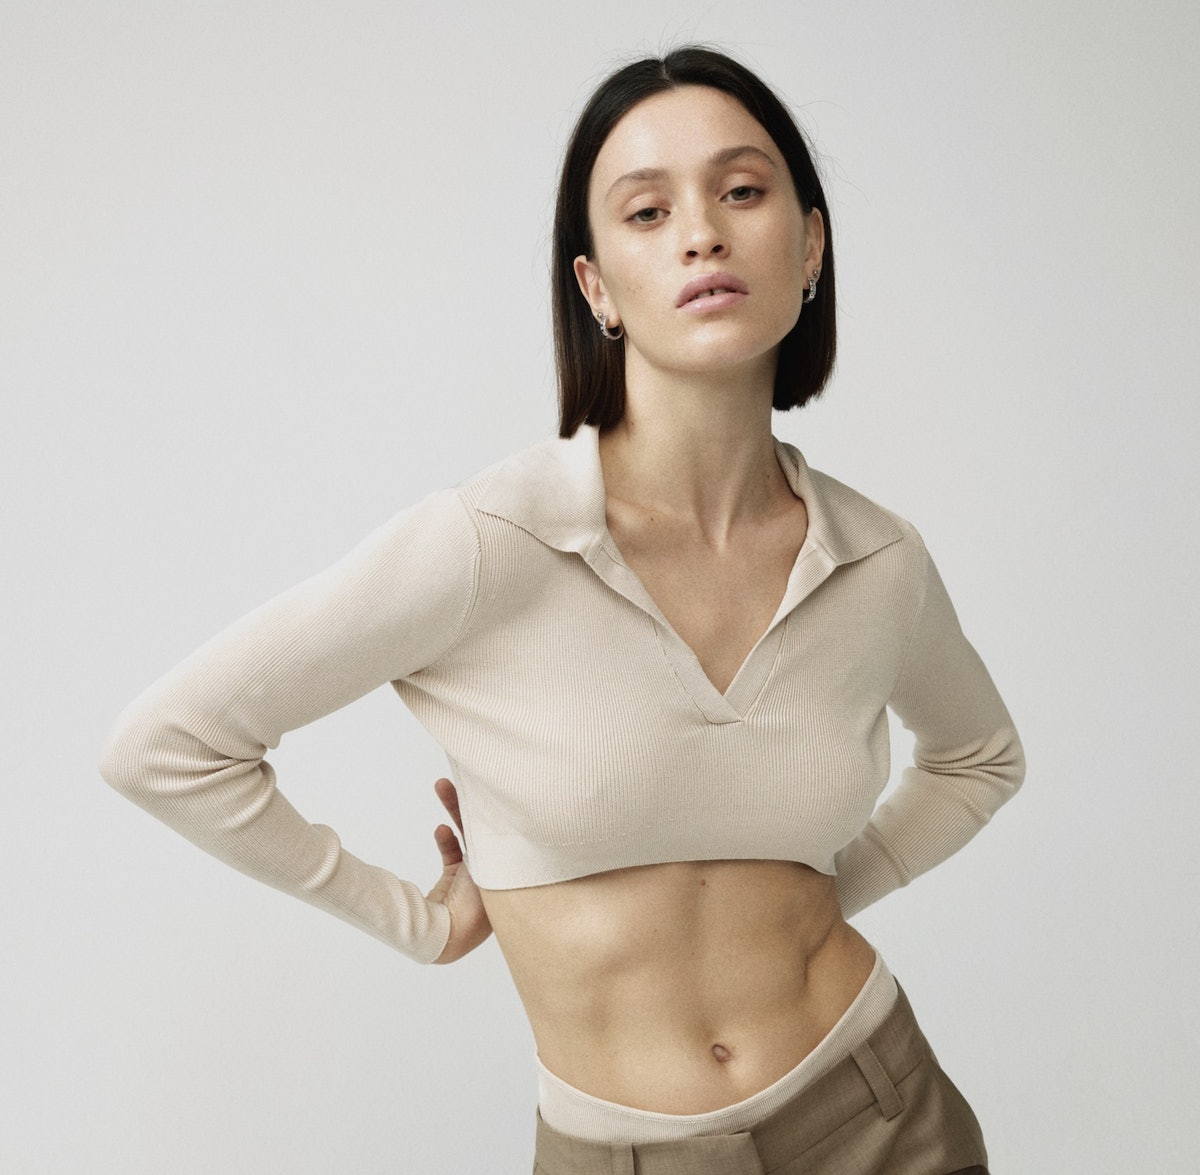 Argyros beige knit top from Aya Muse.